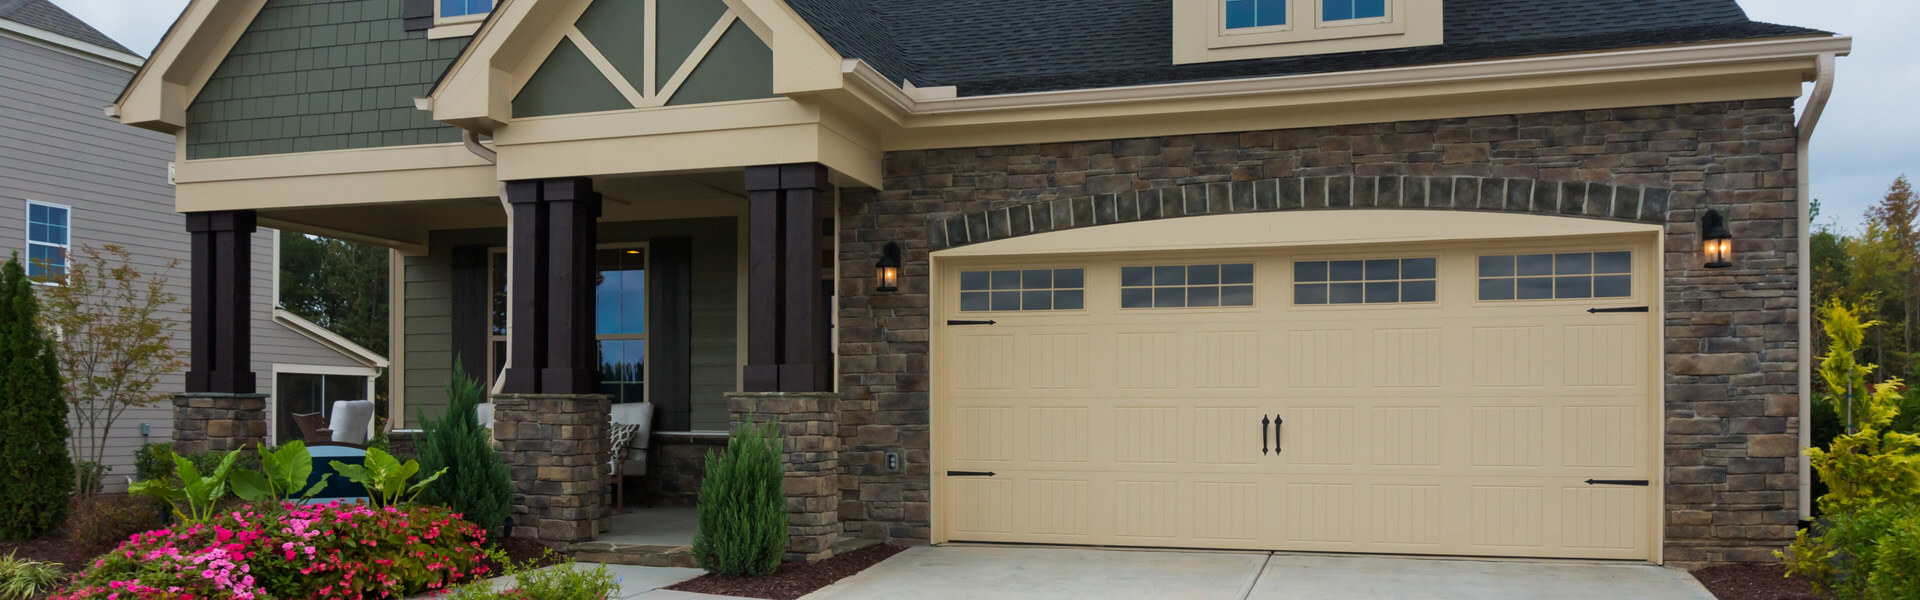 blog va door md before repair annapolis view outsite doors alexandria garage installation